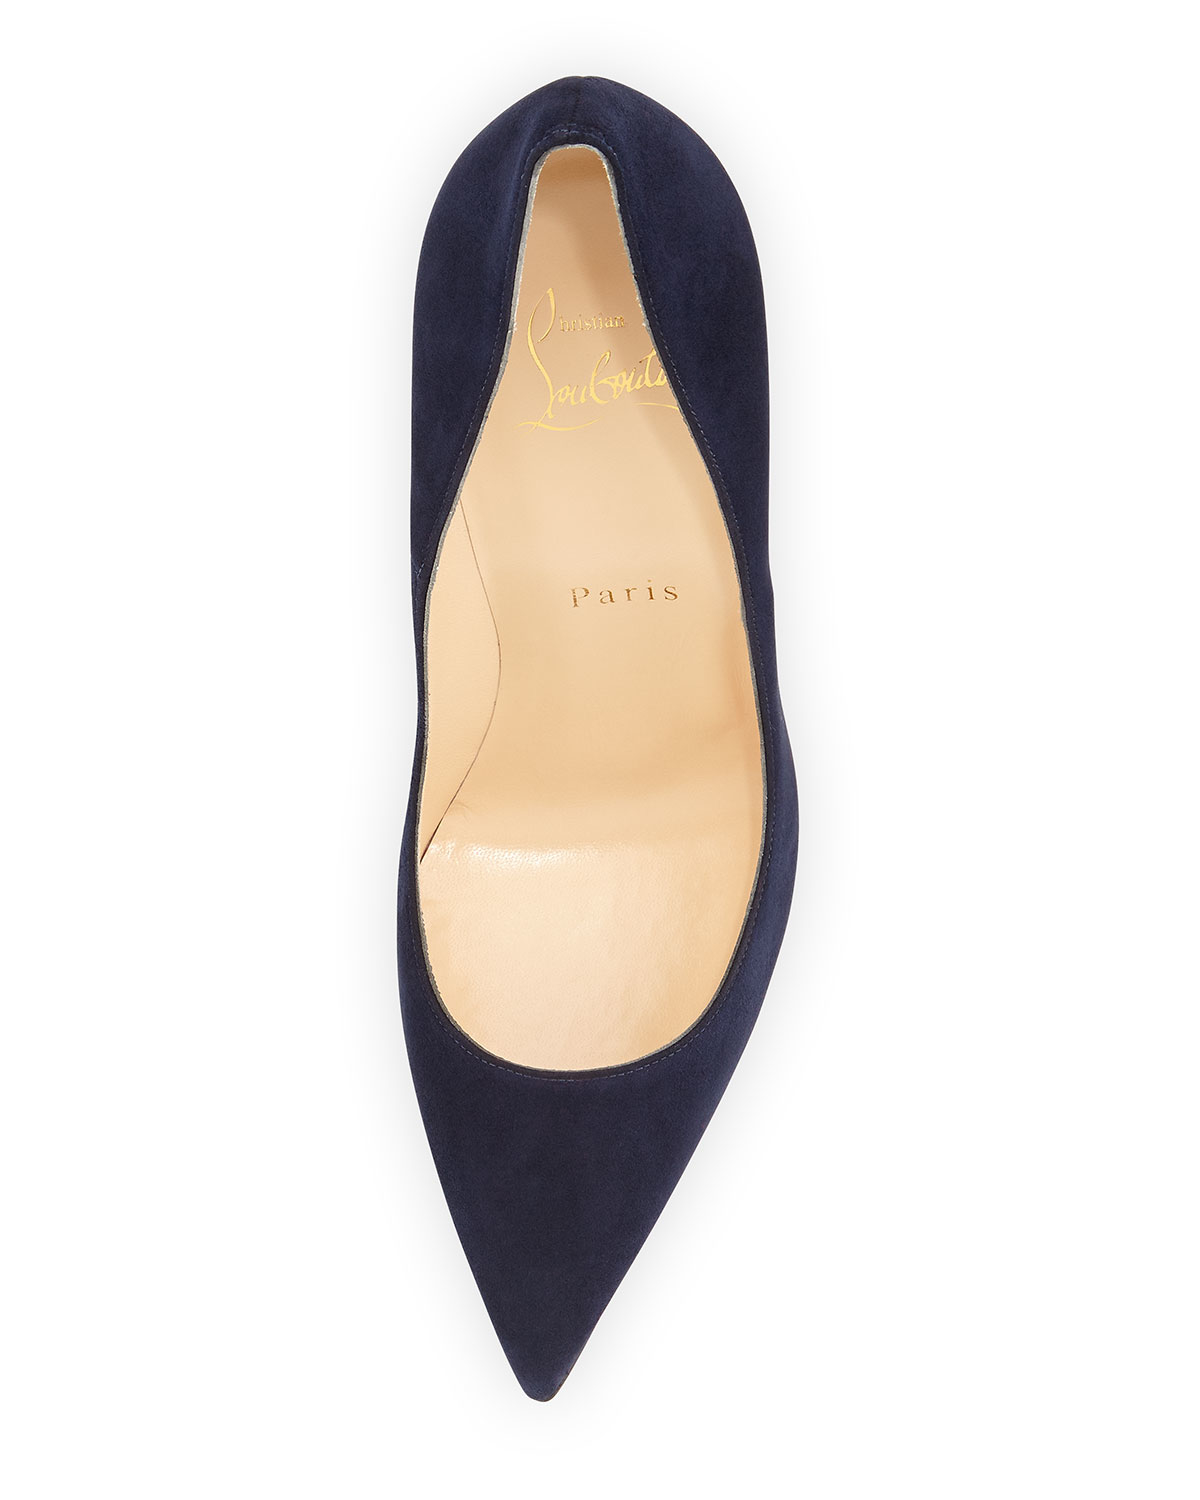 Christian louboutin So Kate Suede Pumps in Blue (NAVY) | Lyst